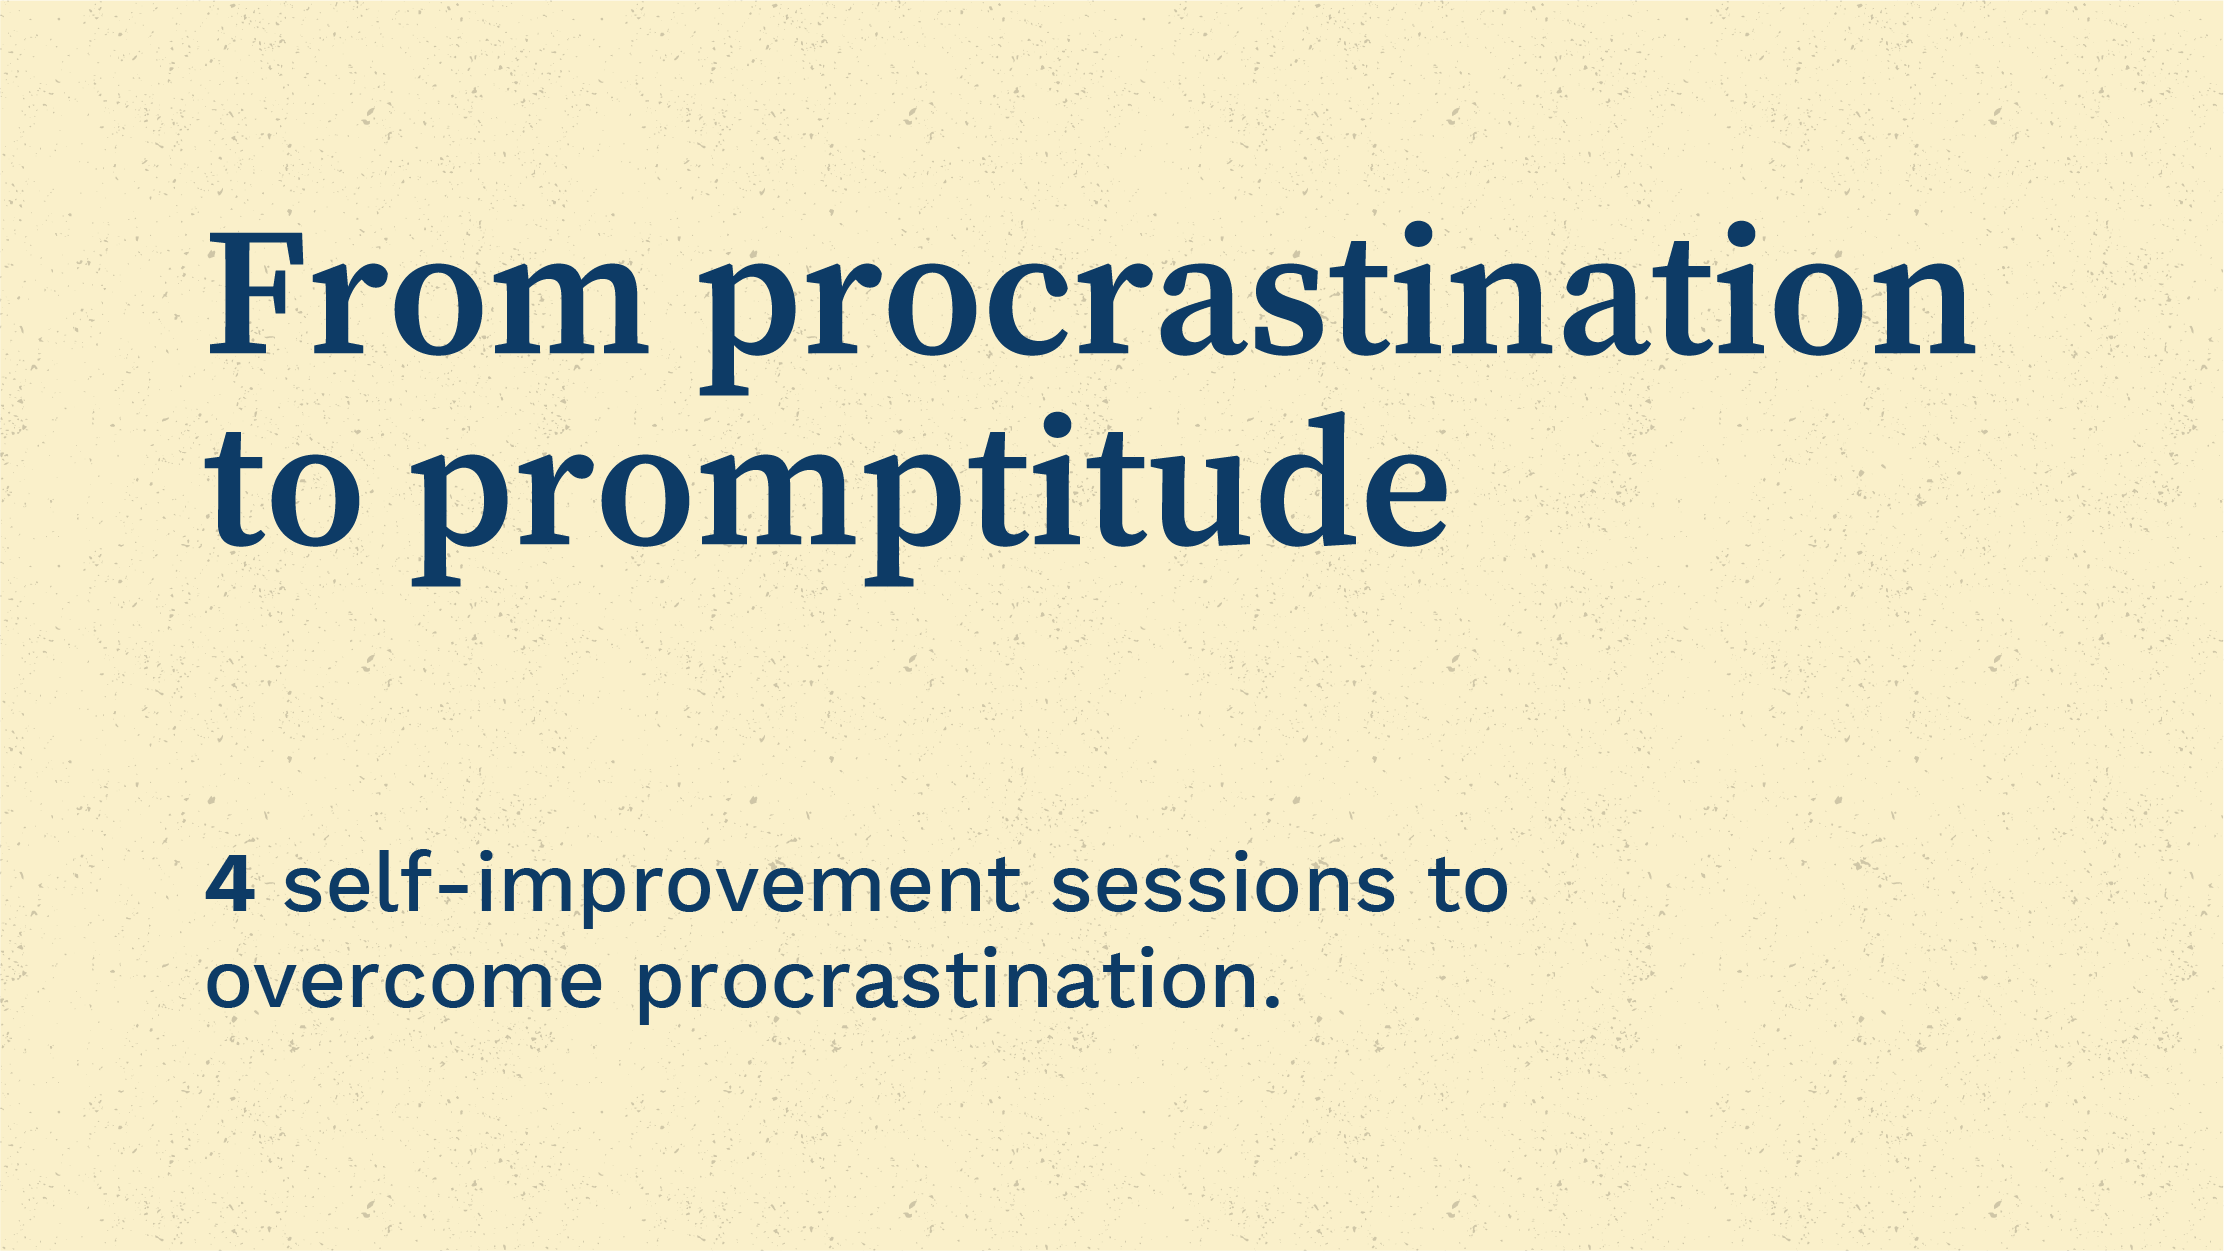 From procrastination to promptitude